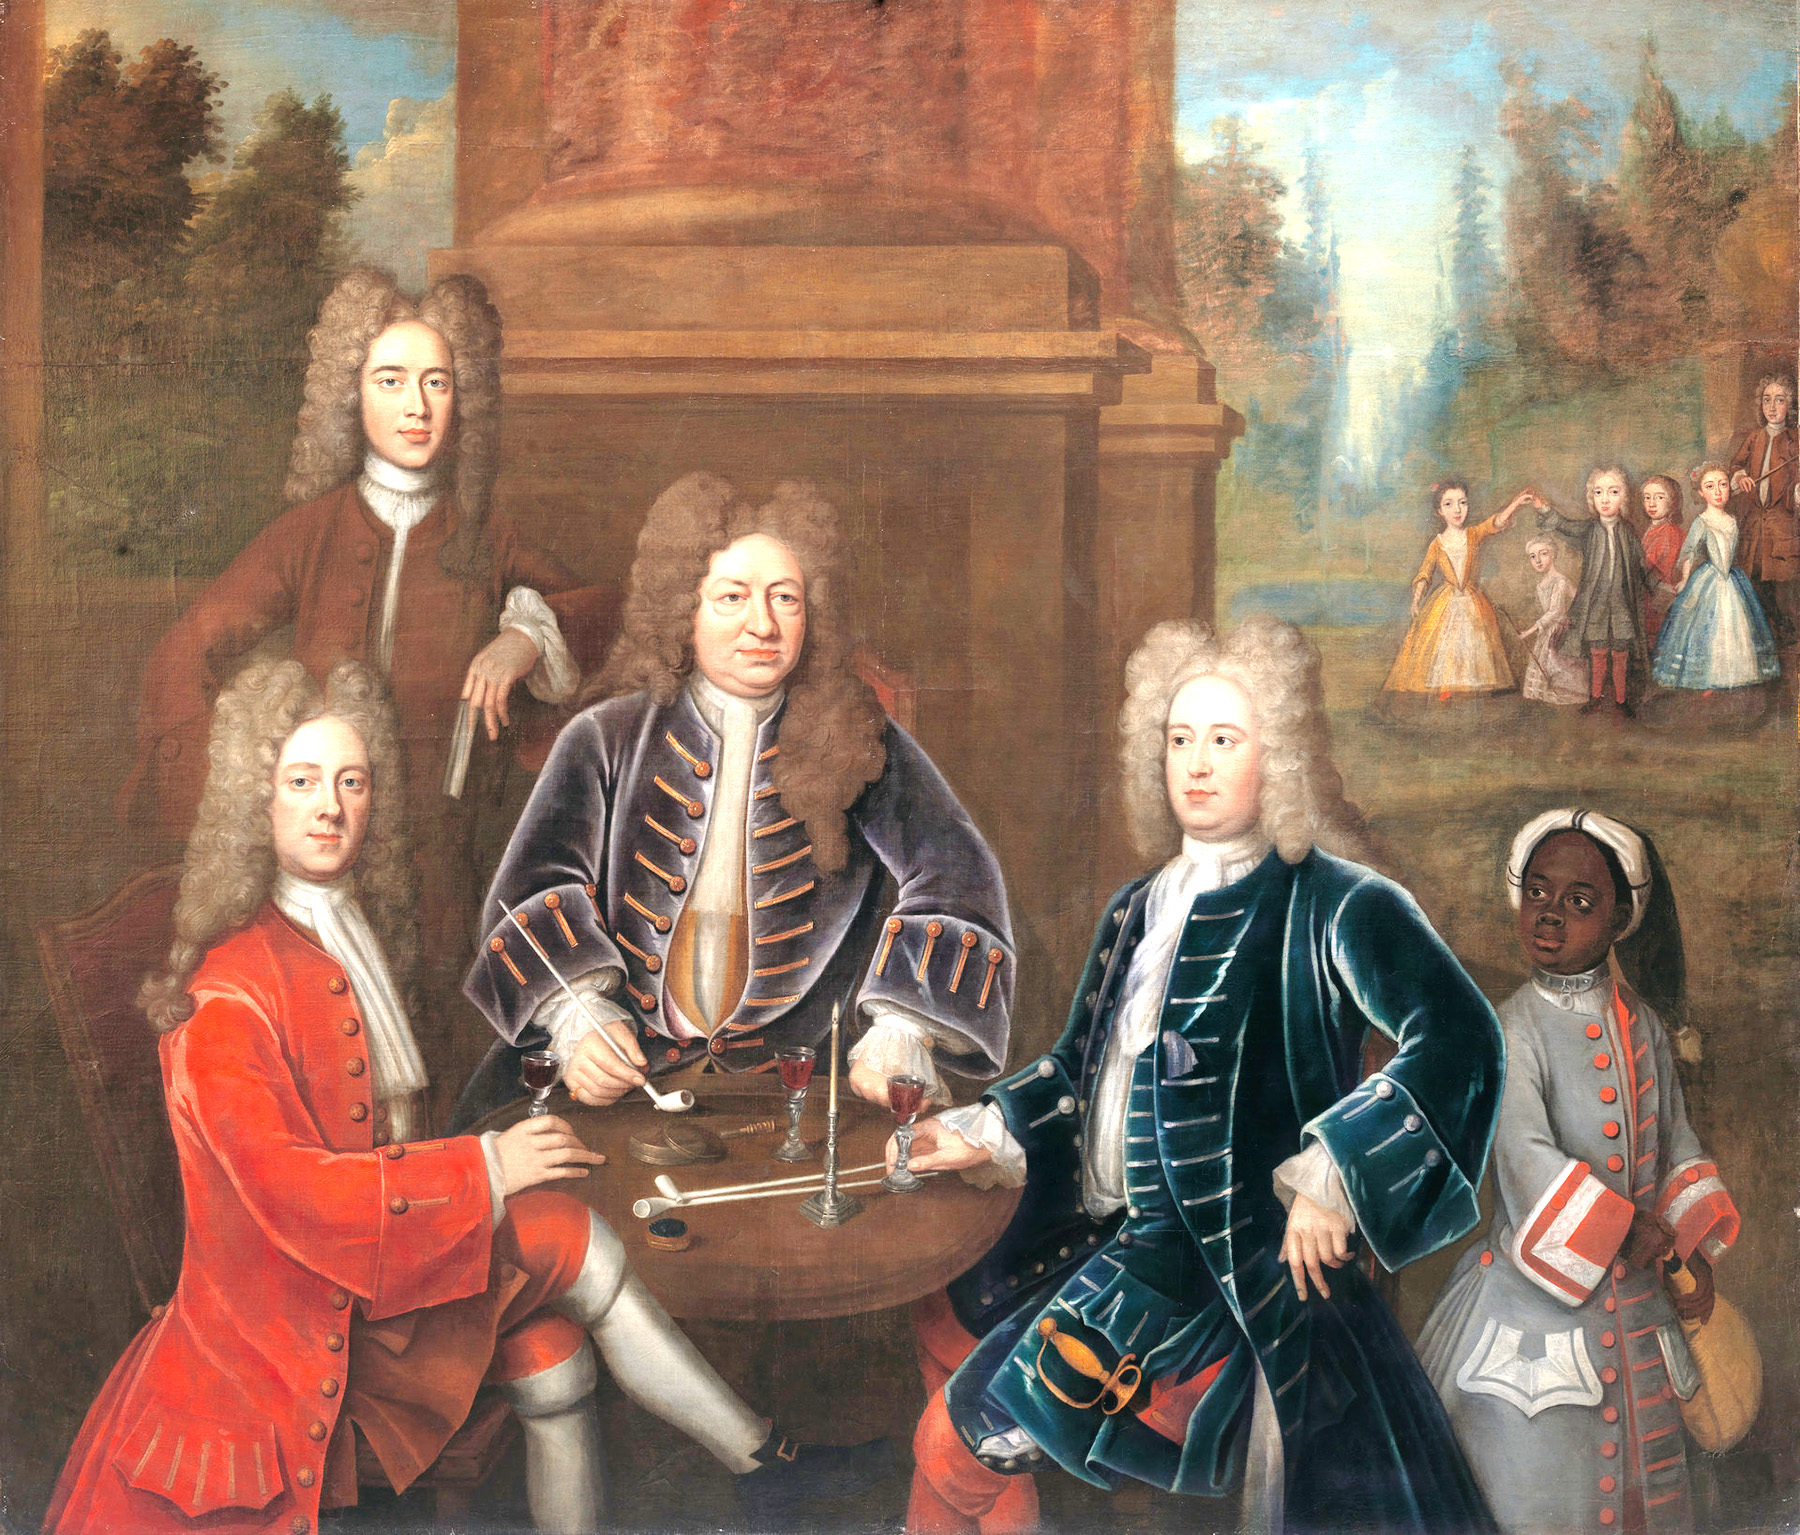 Yale Center for British Art &nbsp&nbsp This painting commemorates the signing of the marriage contract that sealed the union of Elihu Yale's daughter Anne to James Cavendish. Yale sits in the center with his pipe. William Cavendish, second Duke of Devonshire, sit on Yale's right and his younger brother James, the betrothed, on Yale's left. An attorney identified as Tunsdale stands on the painting's left.